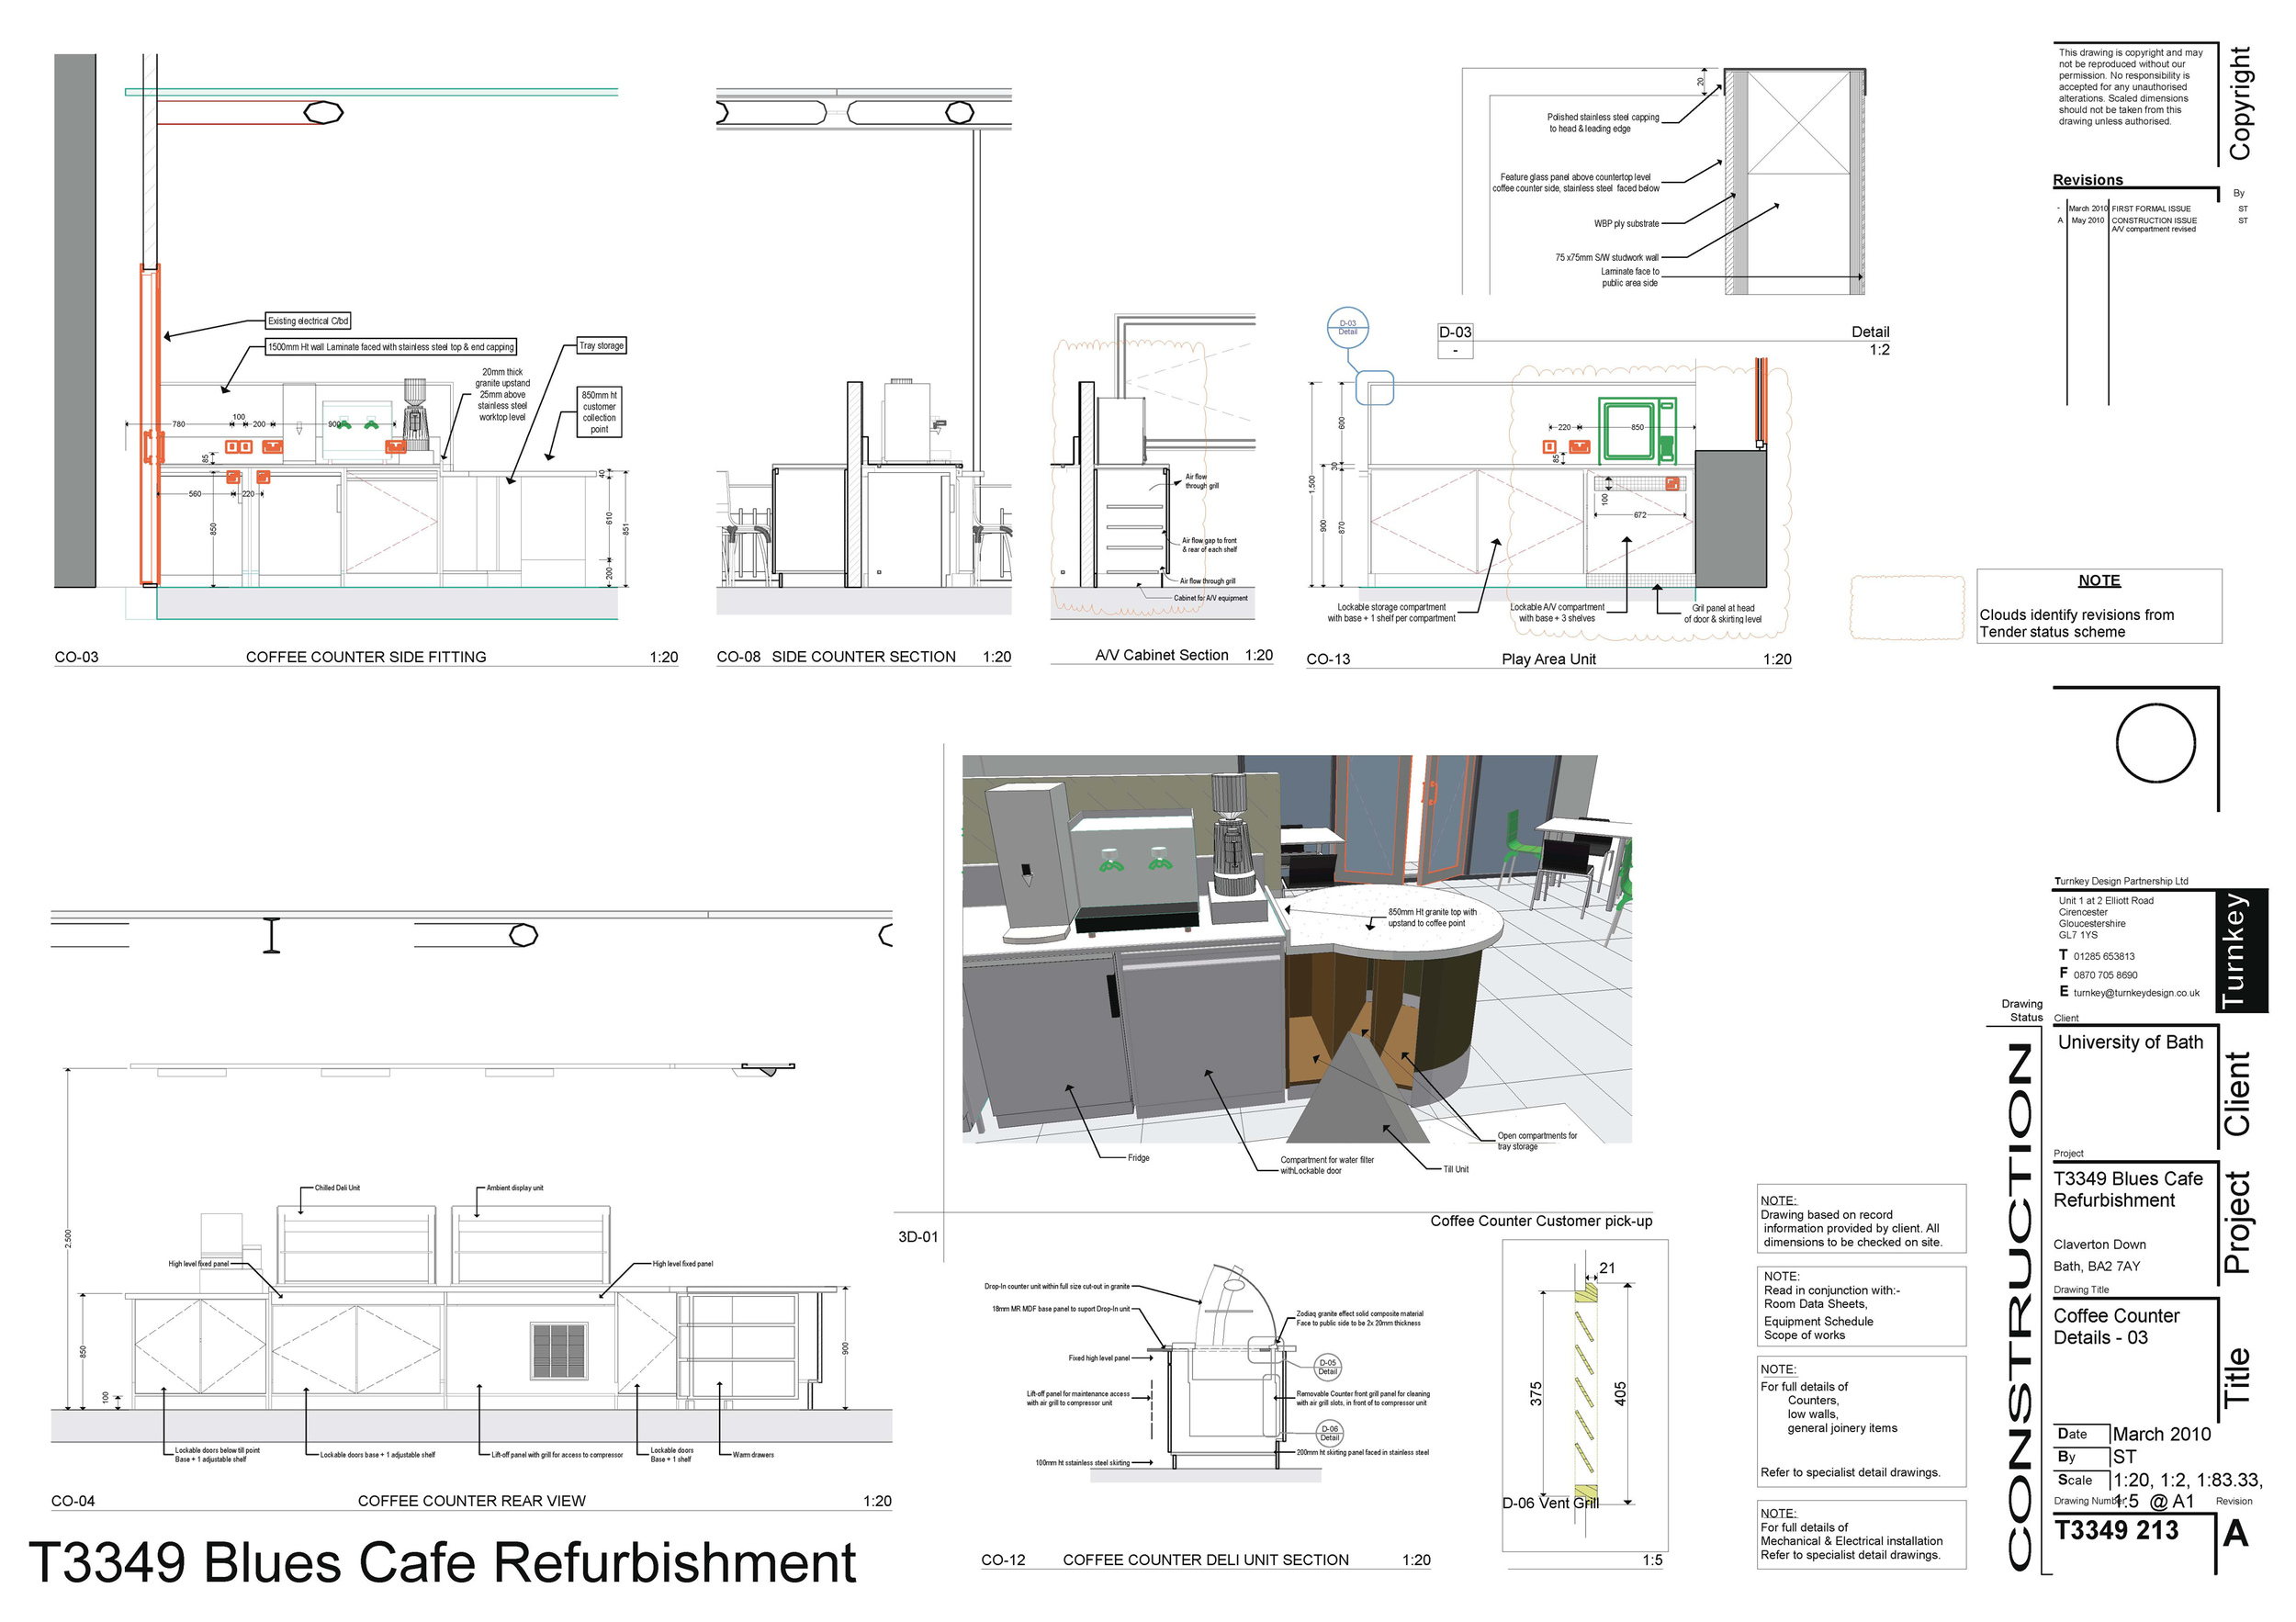 T3349 213 Coffee Counter Details - 03.jpg